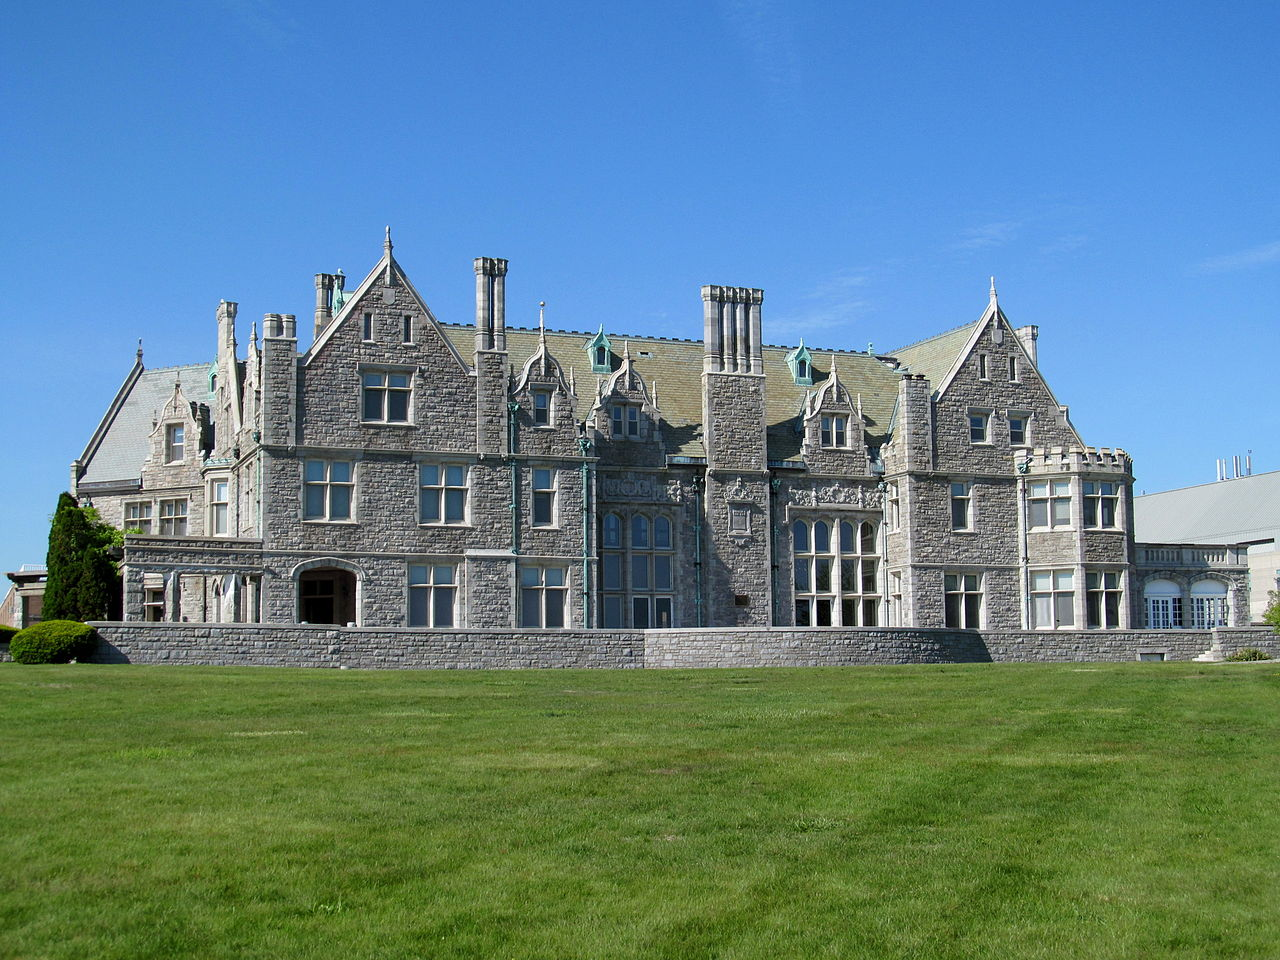 Branford House stands prominently on Avery Point overlooking Eastern Point Bay. It was built in 1904 by Morton Plant.